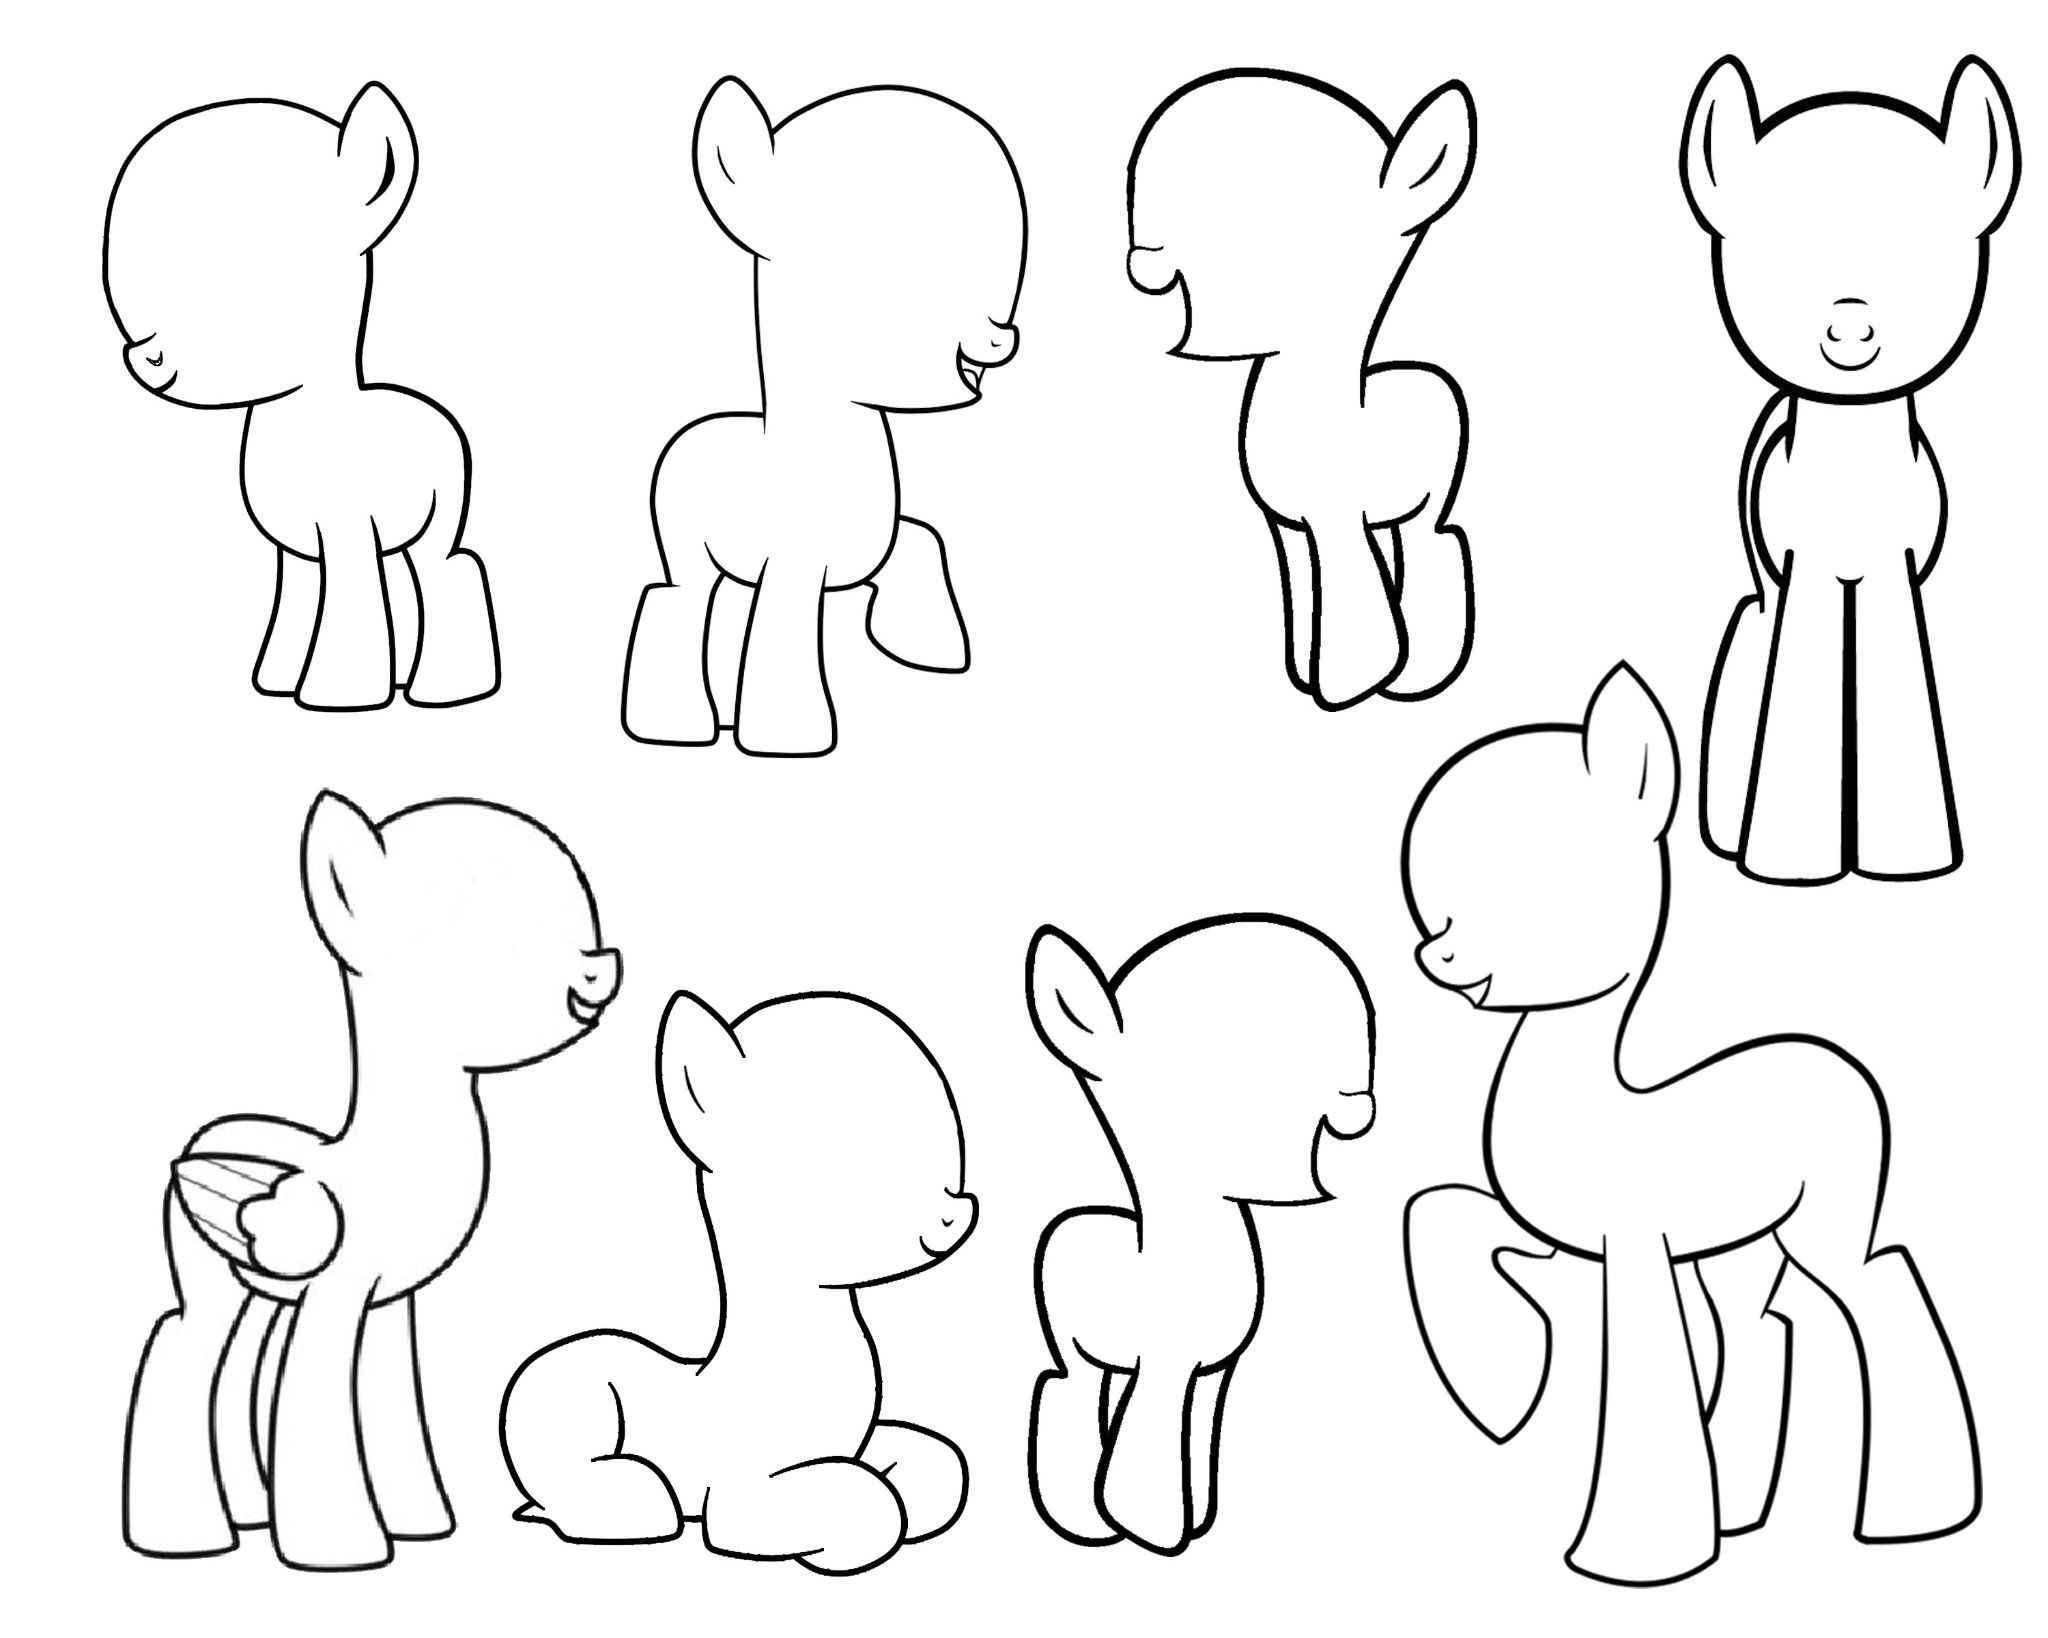 My Little Pony Coloring Pages Cutie Mark : Blank mlp bases for making your own pony persona